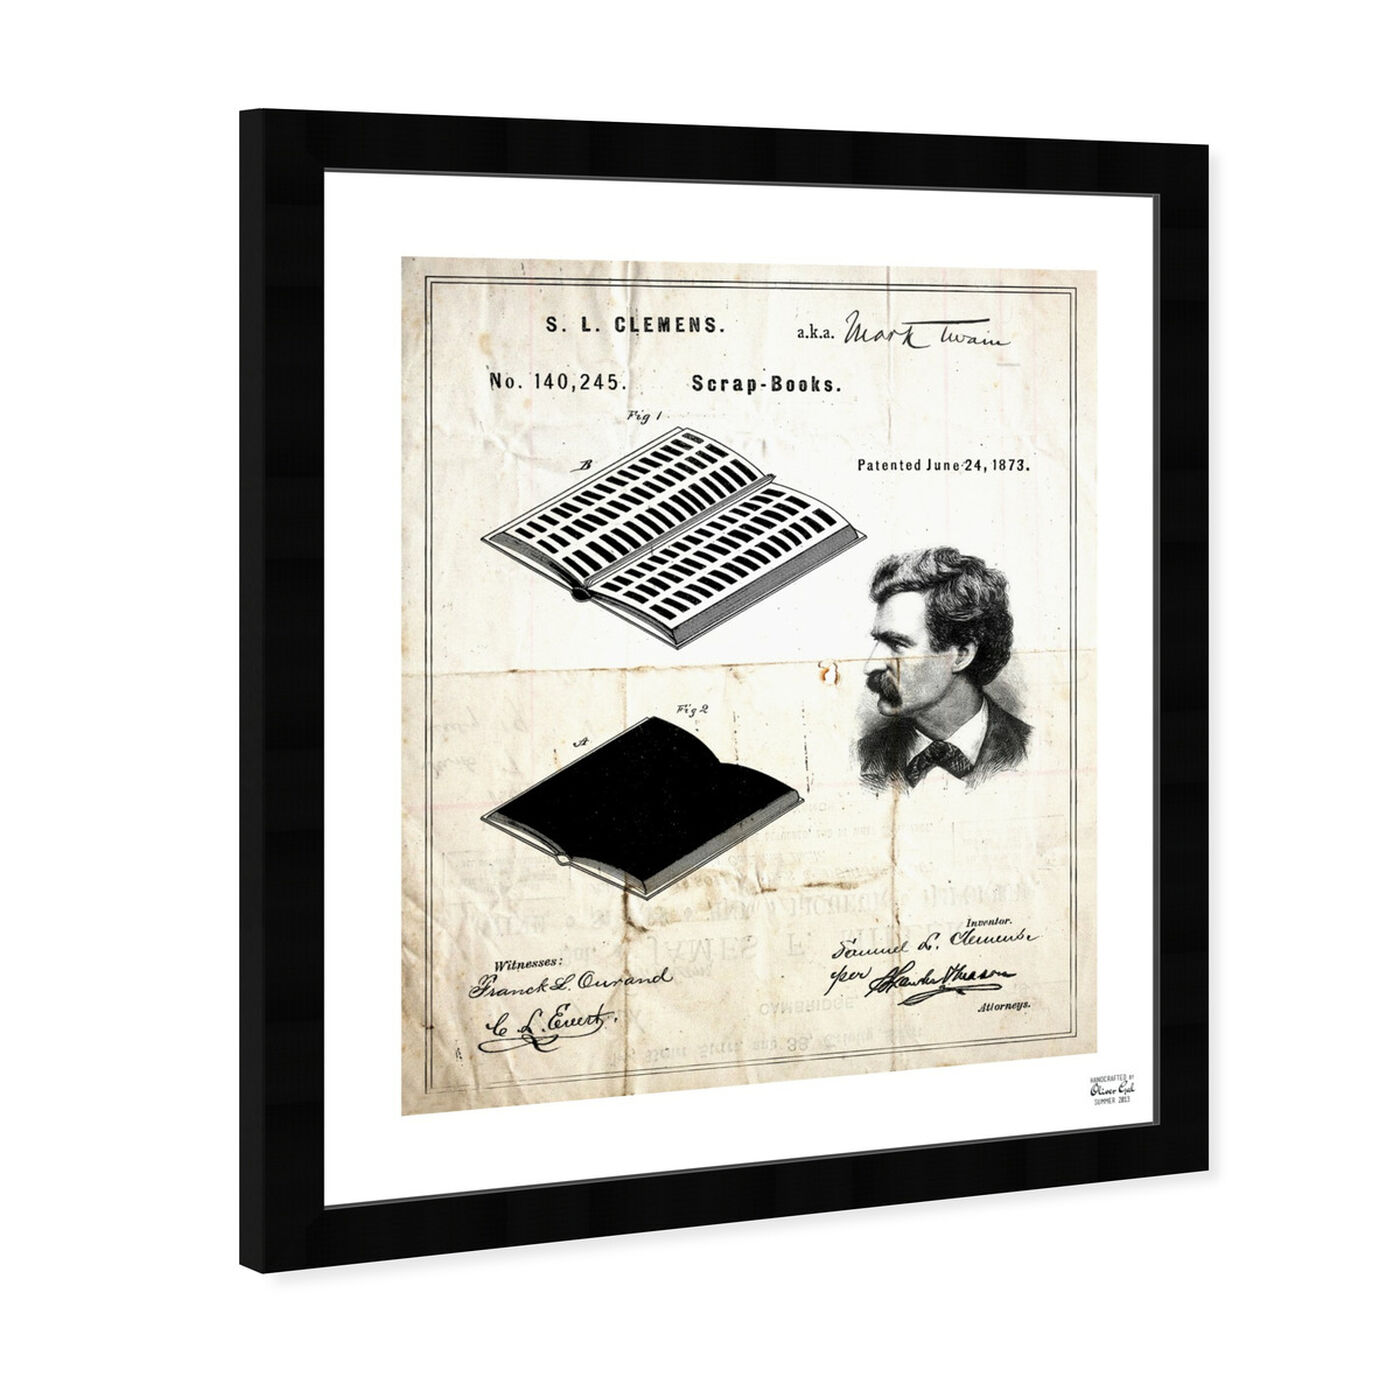 Angled view of Mark Twain's Scrapbook 1873 featuring education and office and scientist art.